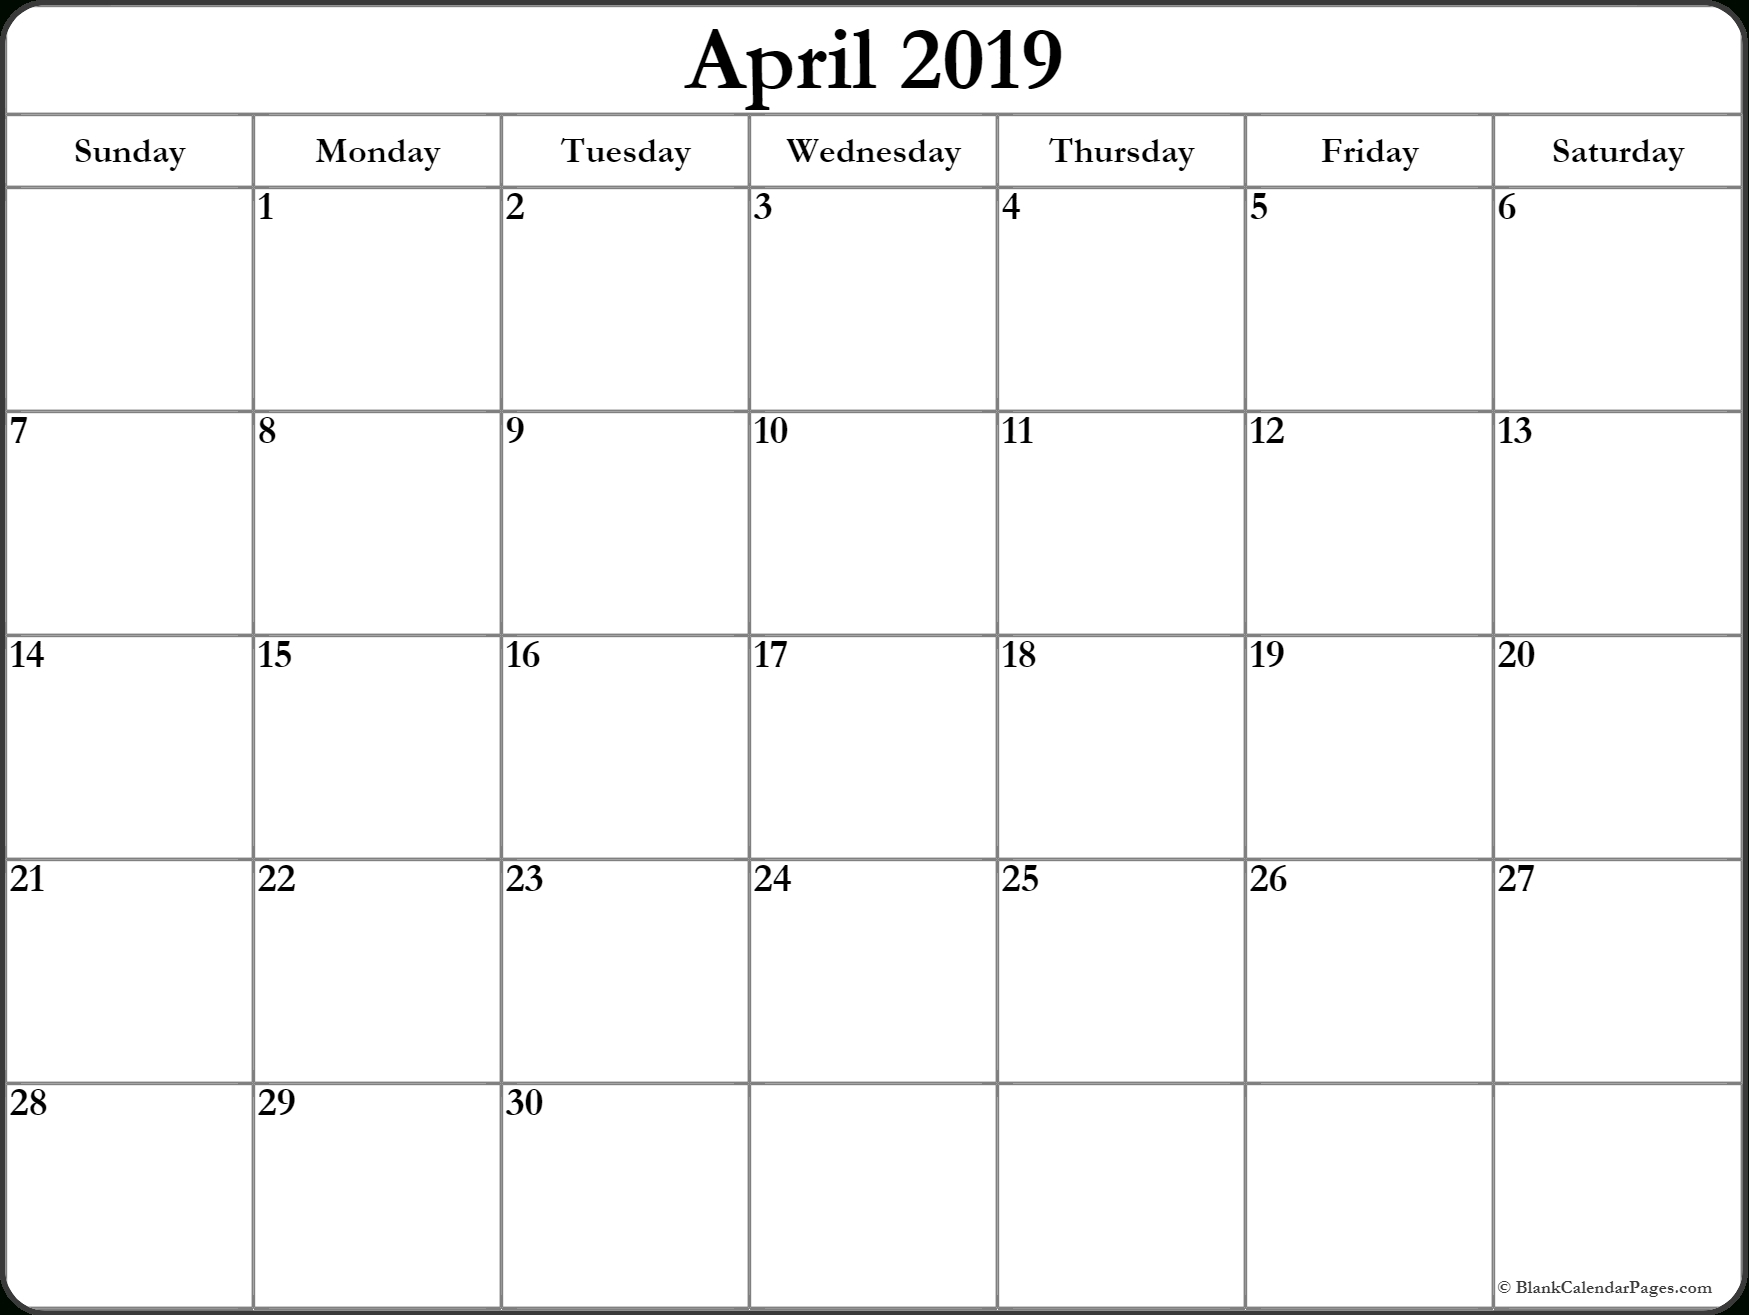 Blank April 2019 Calendar Document